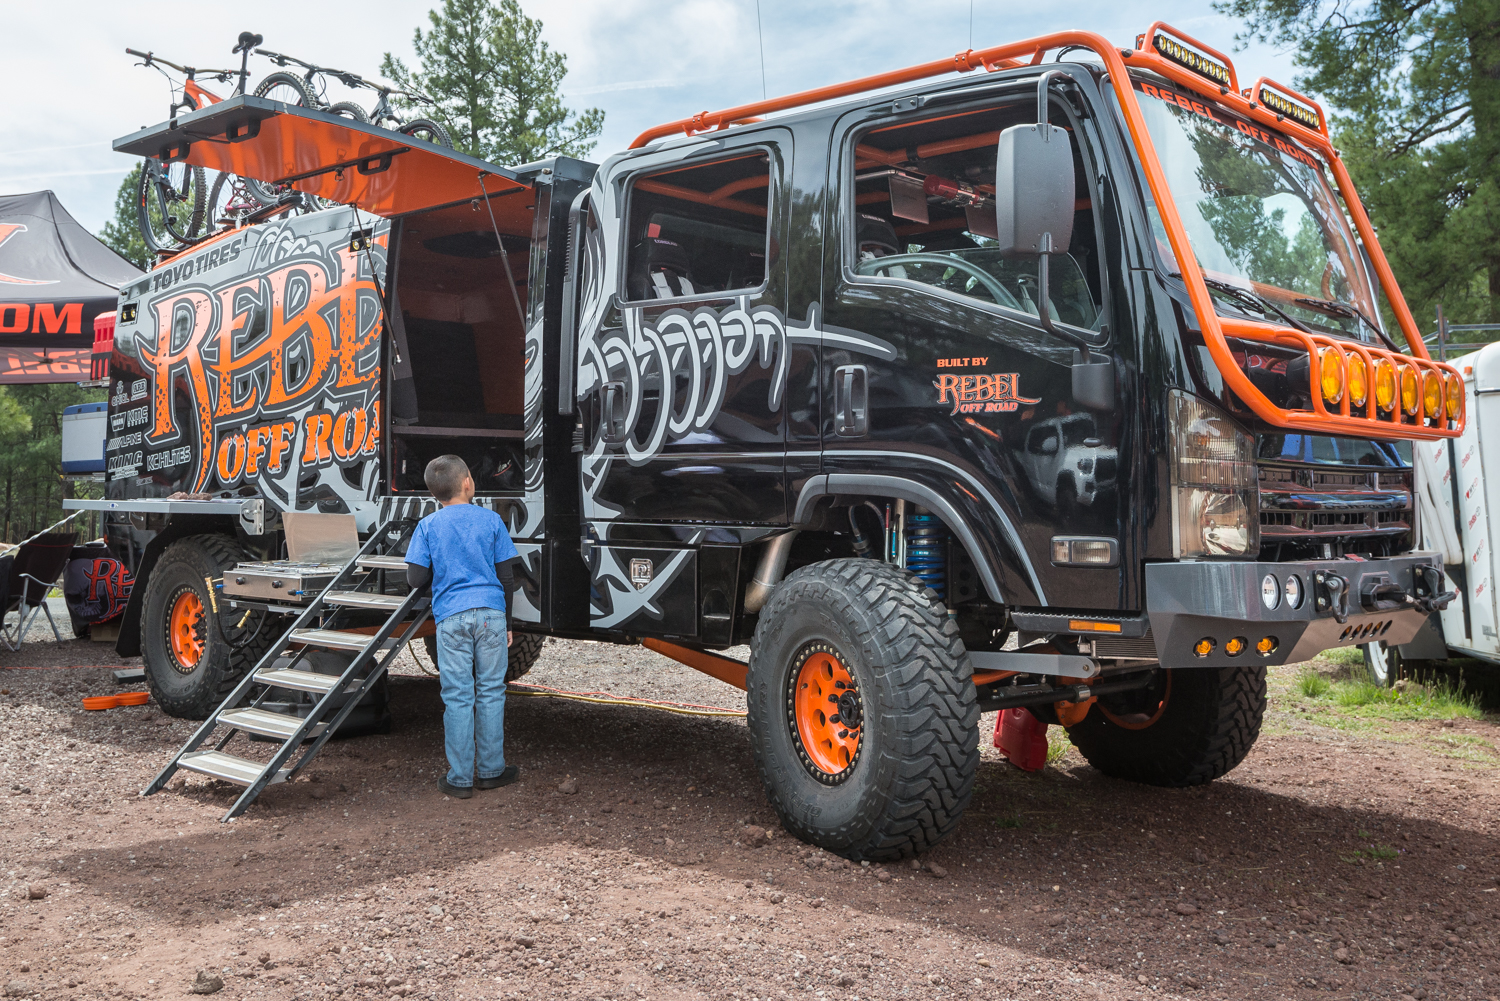 rebelzilla overland expo adventuremobile